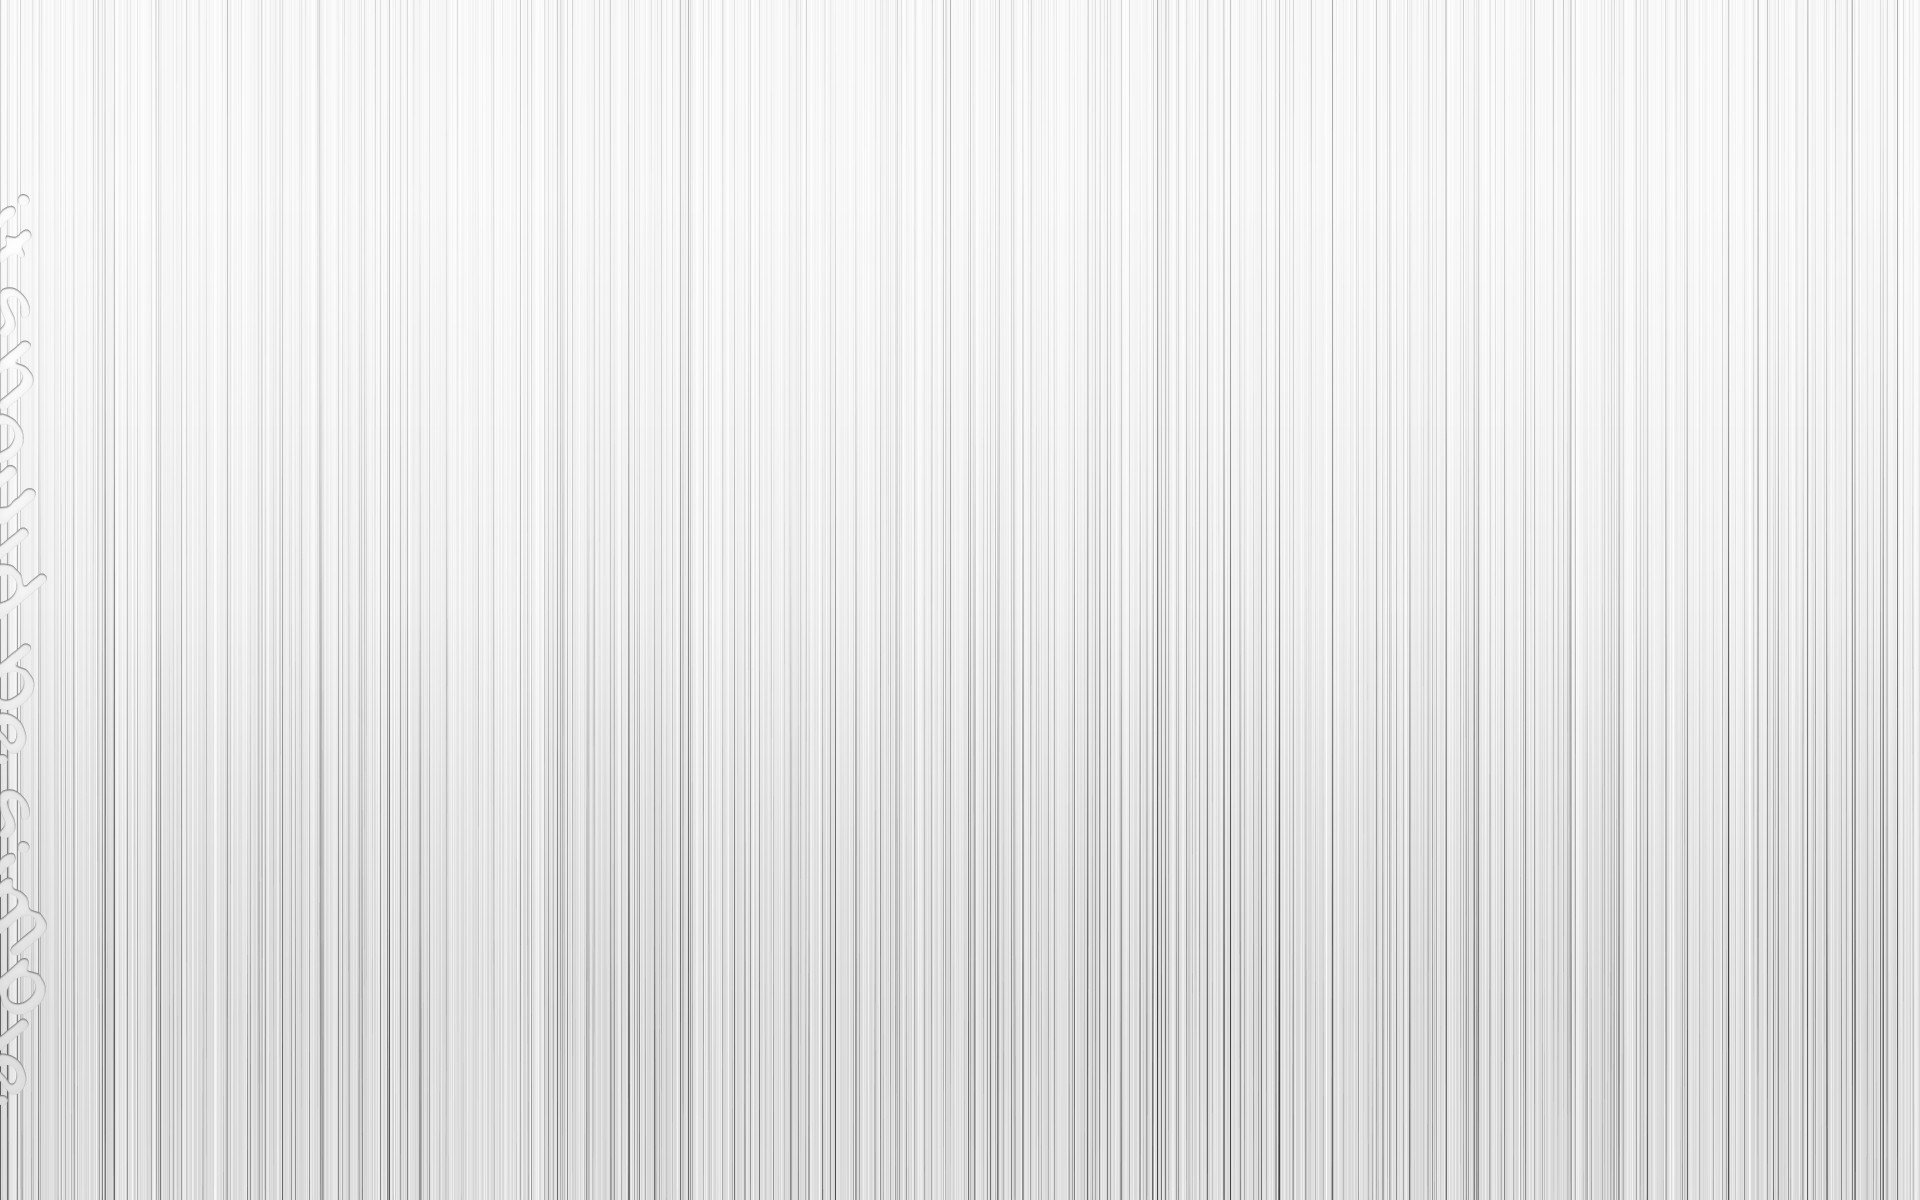 Simple White Tumblr Backgrounds Lovely White Background Tumblr ·① Download Free Cool Hd